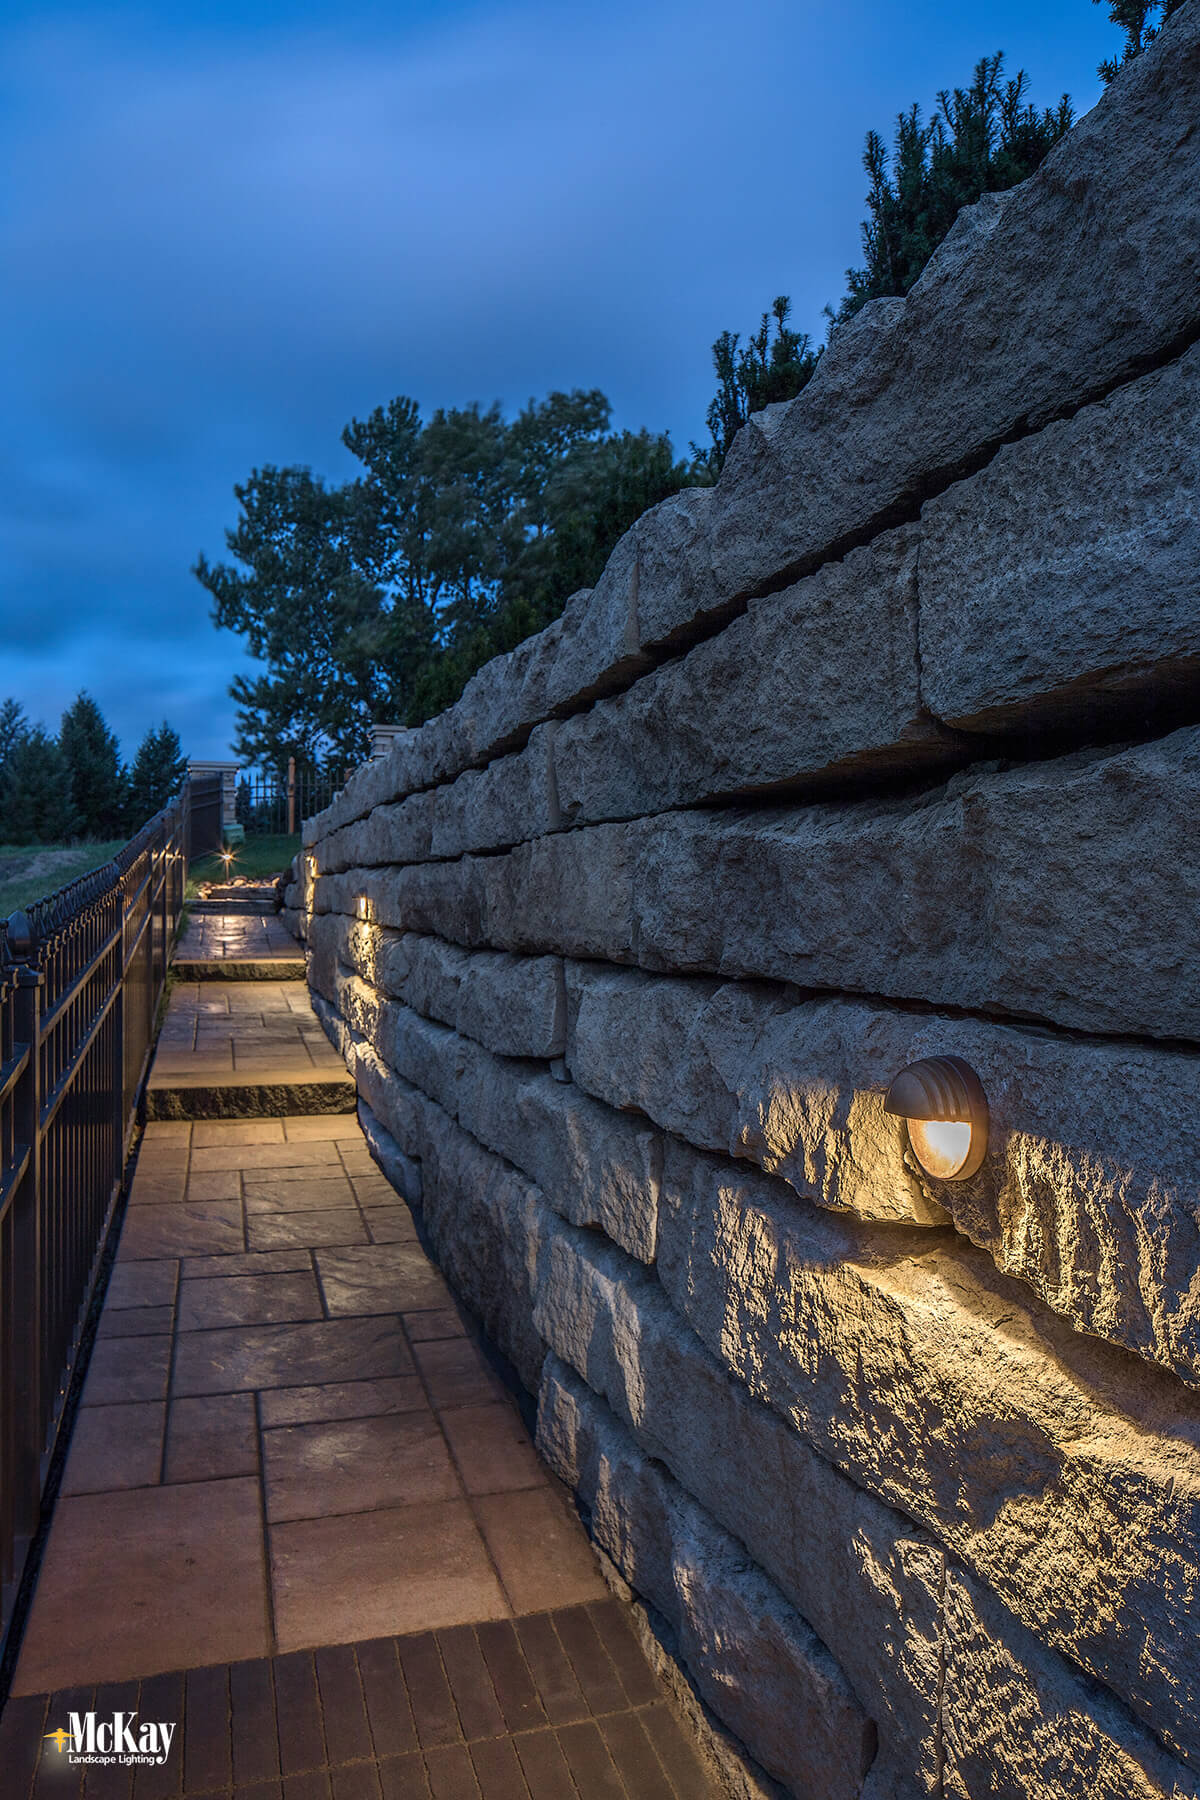 Retaining Wall Outdoor Lighting: These wall lights sit flush with the stone and effectively spread light down and out to light the path. The elevation changes as you walk. We installed a light at each step tread to help note each change in elevation. Click to learn more... | McKay Landscape Lighting - Omaha Nebraska